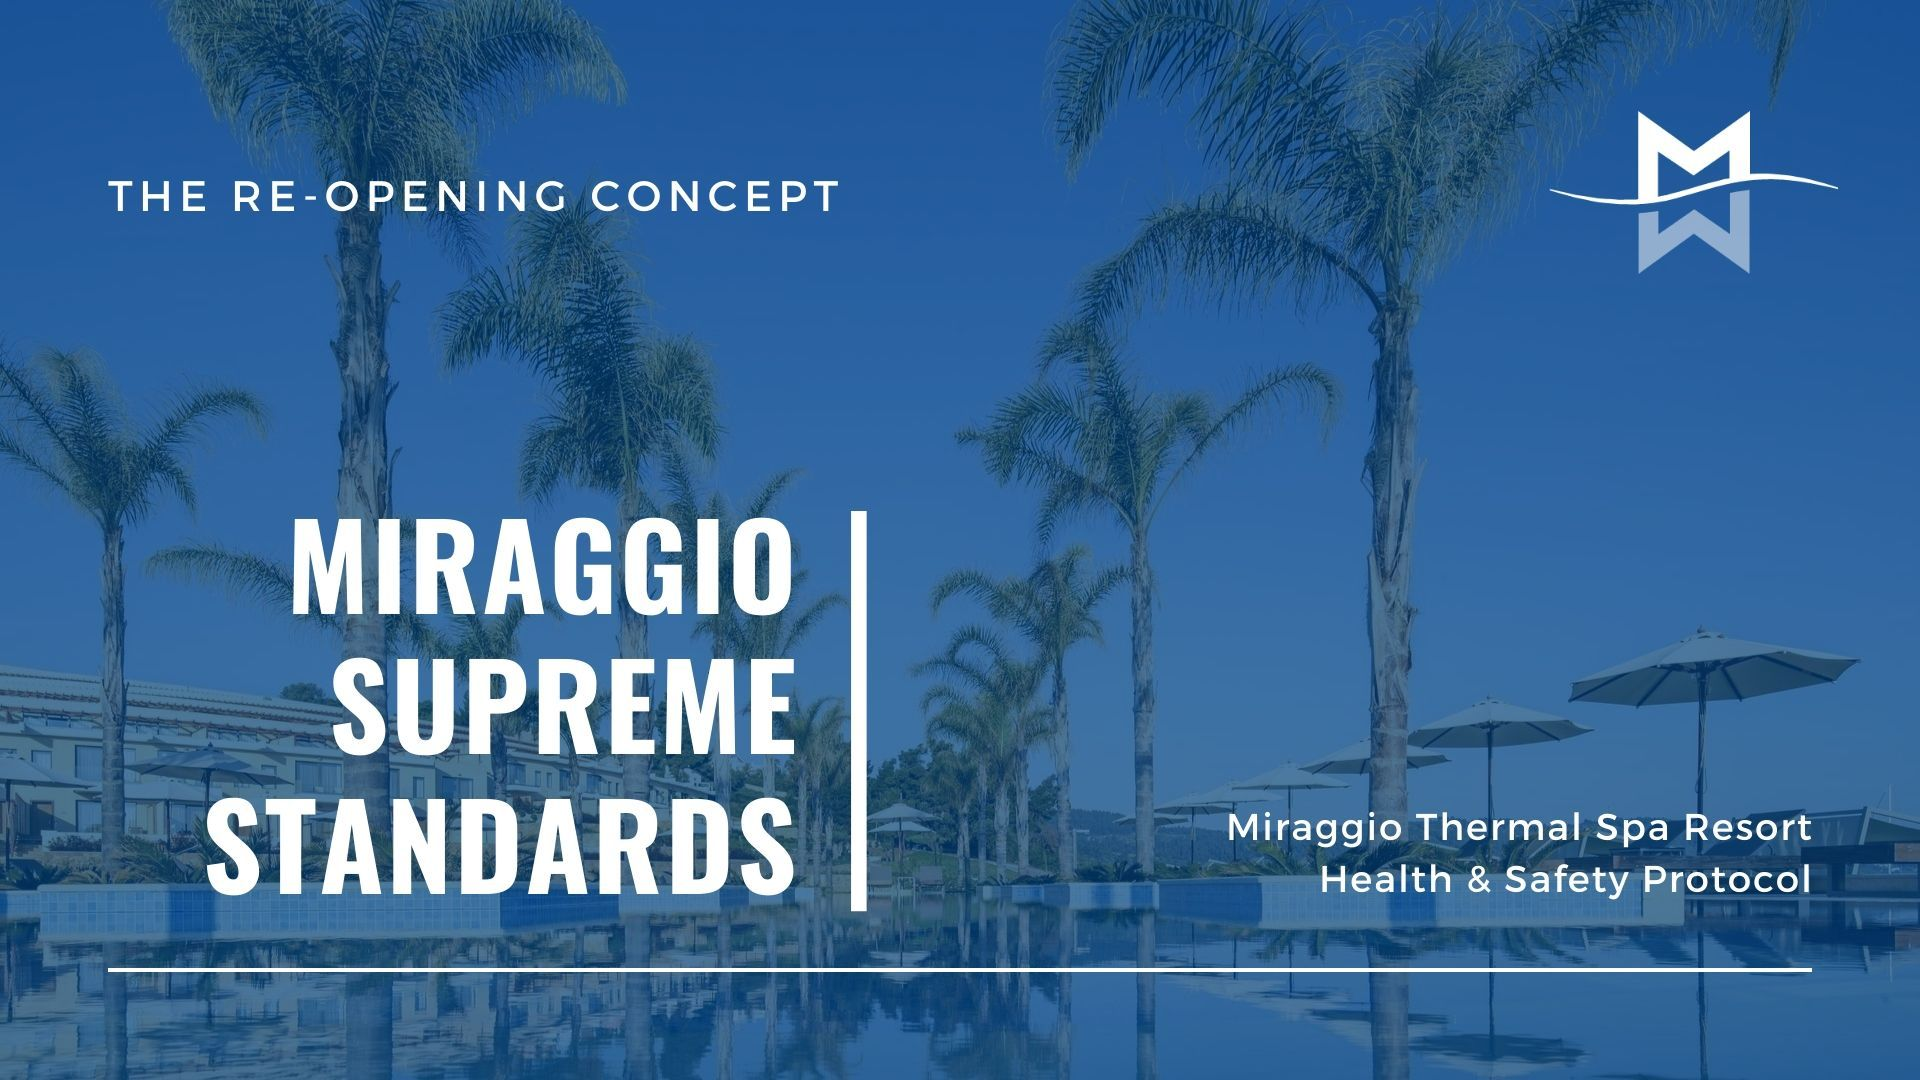 The Miraggio Supreme Standards